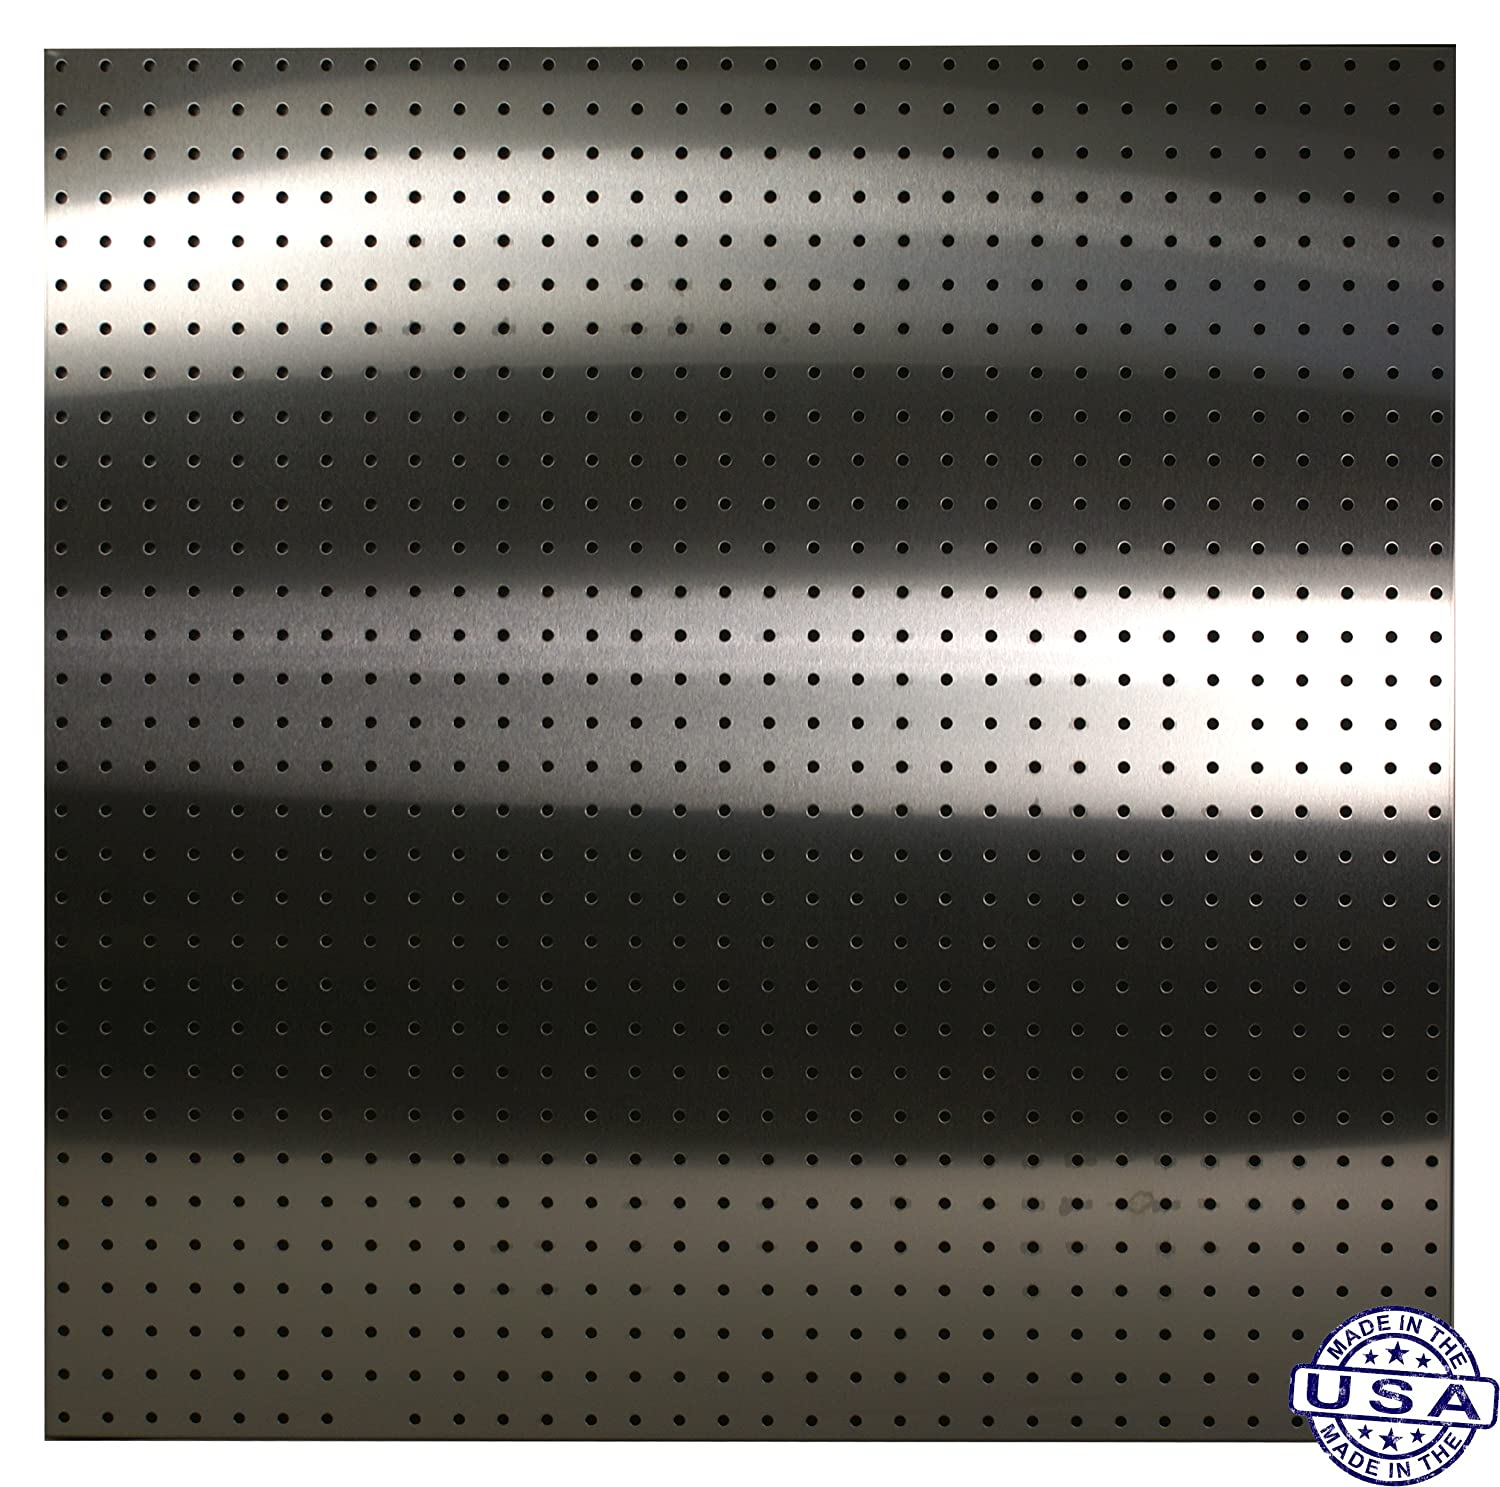 Stainless Supply Stainless Steel Pegboard 2-pack 16x32-430 - Selected Size: Various Sizes Available; See Drop Down Menu